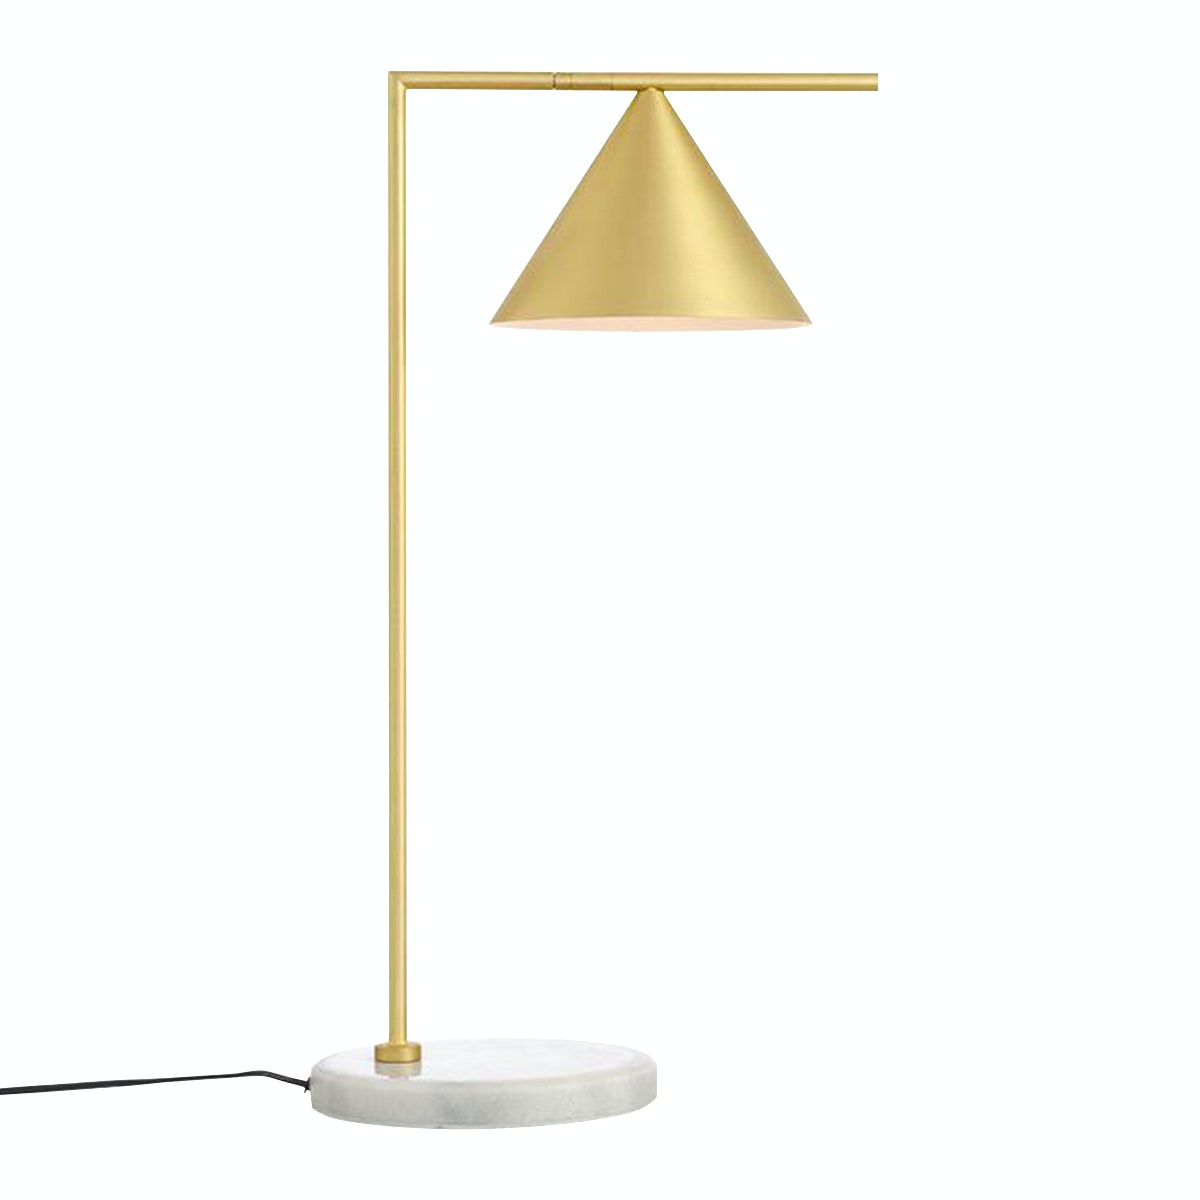 Lite and Deco Minimalis Table Lamp 9035T